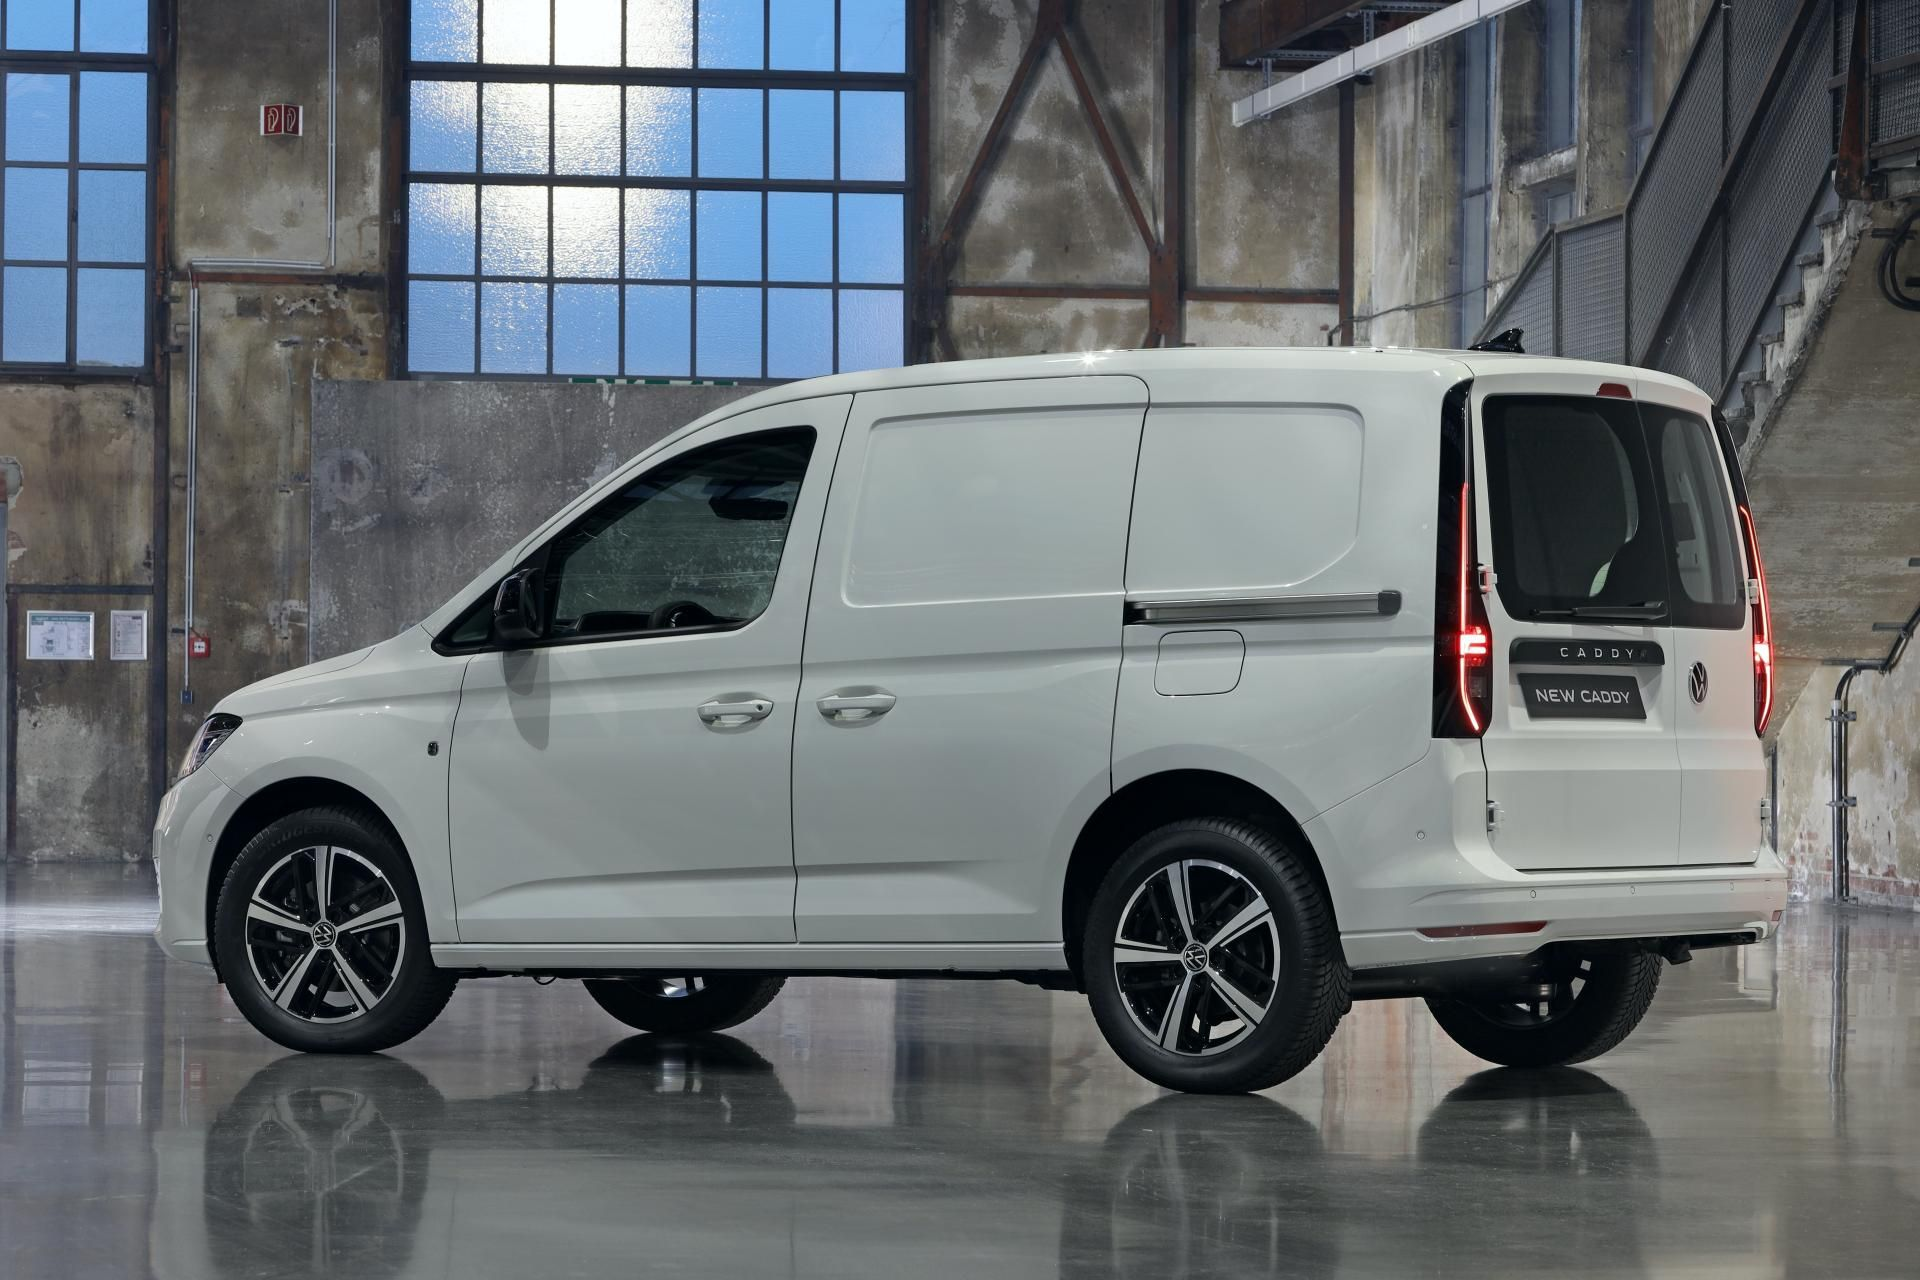 New 5 VW Caddy Wraps MQB Underpinnings In Evolutionary Styling